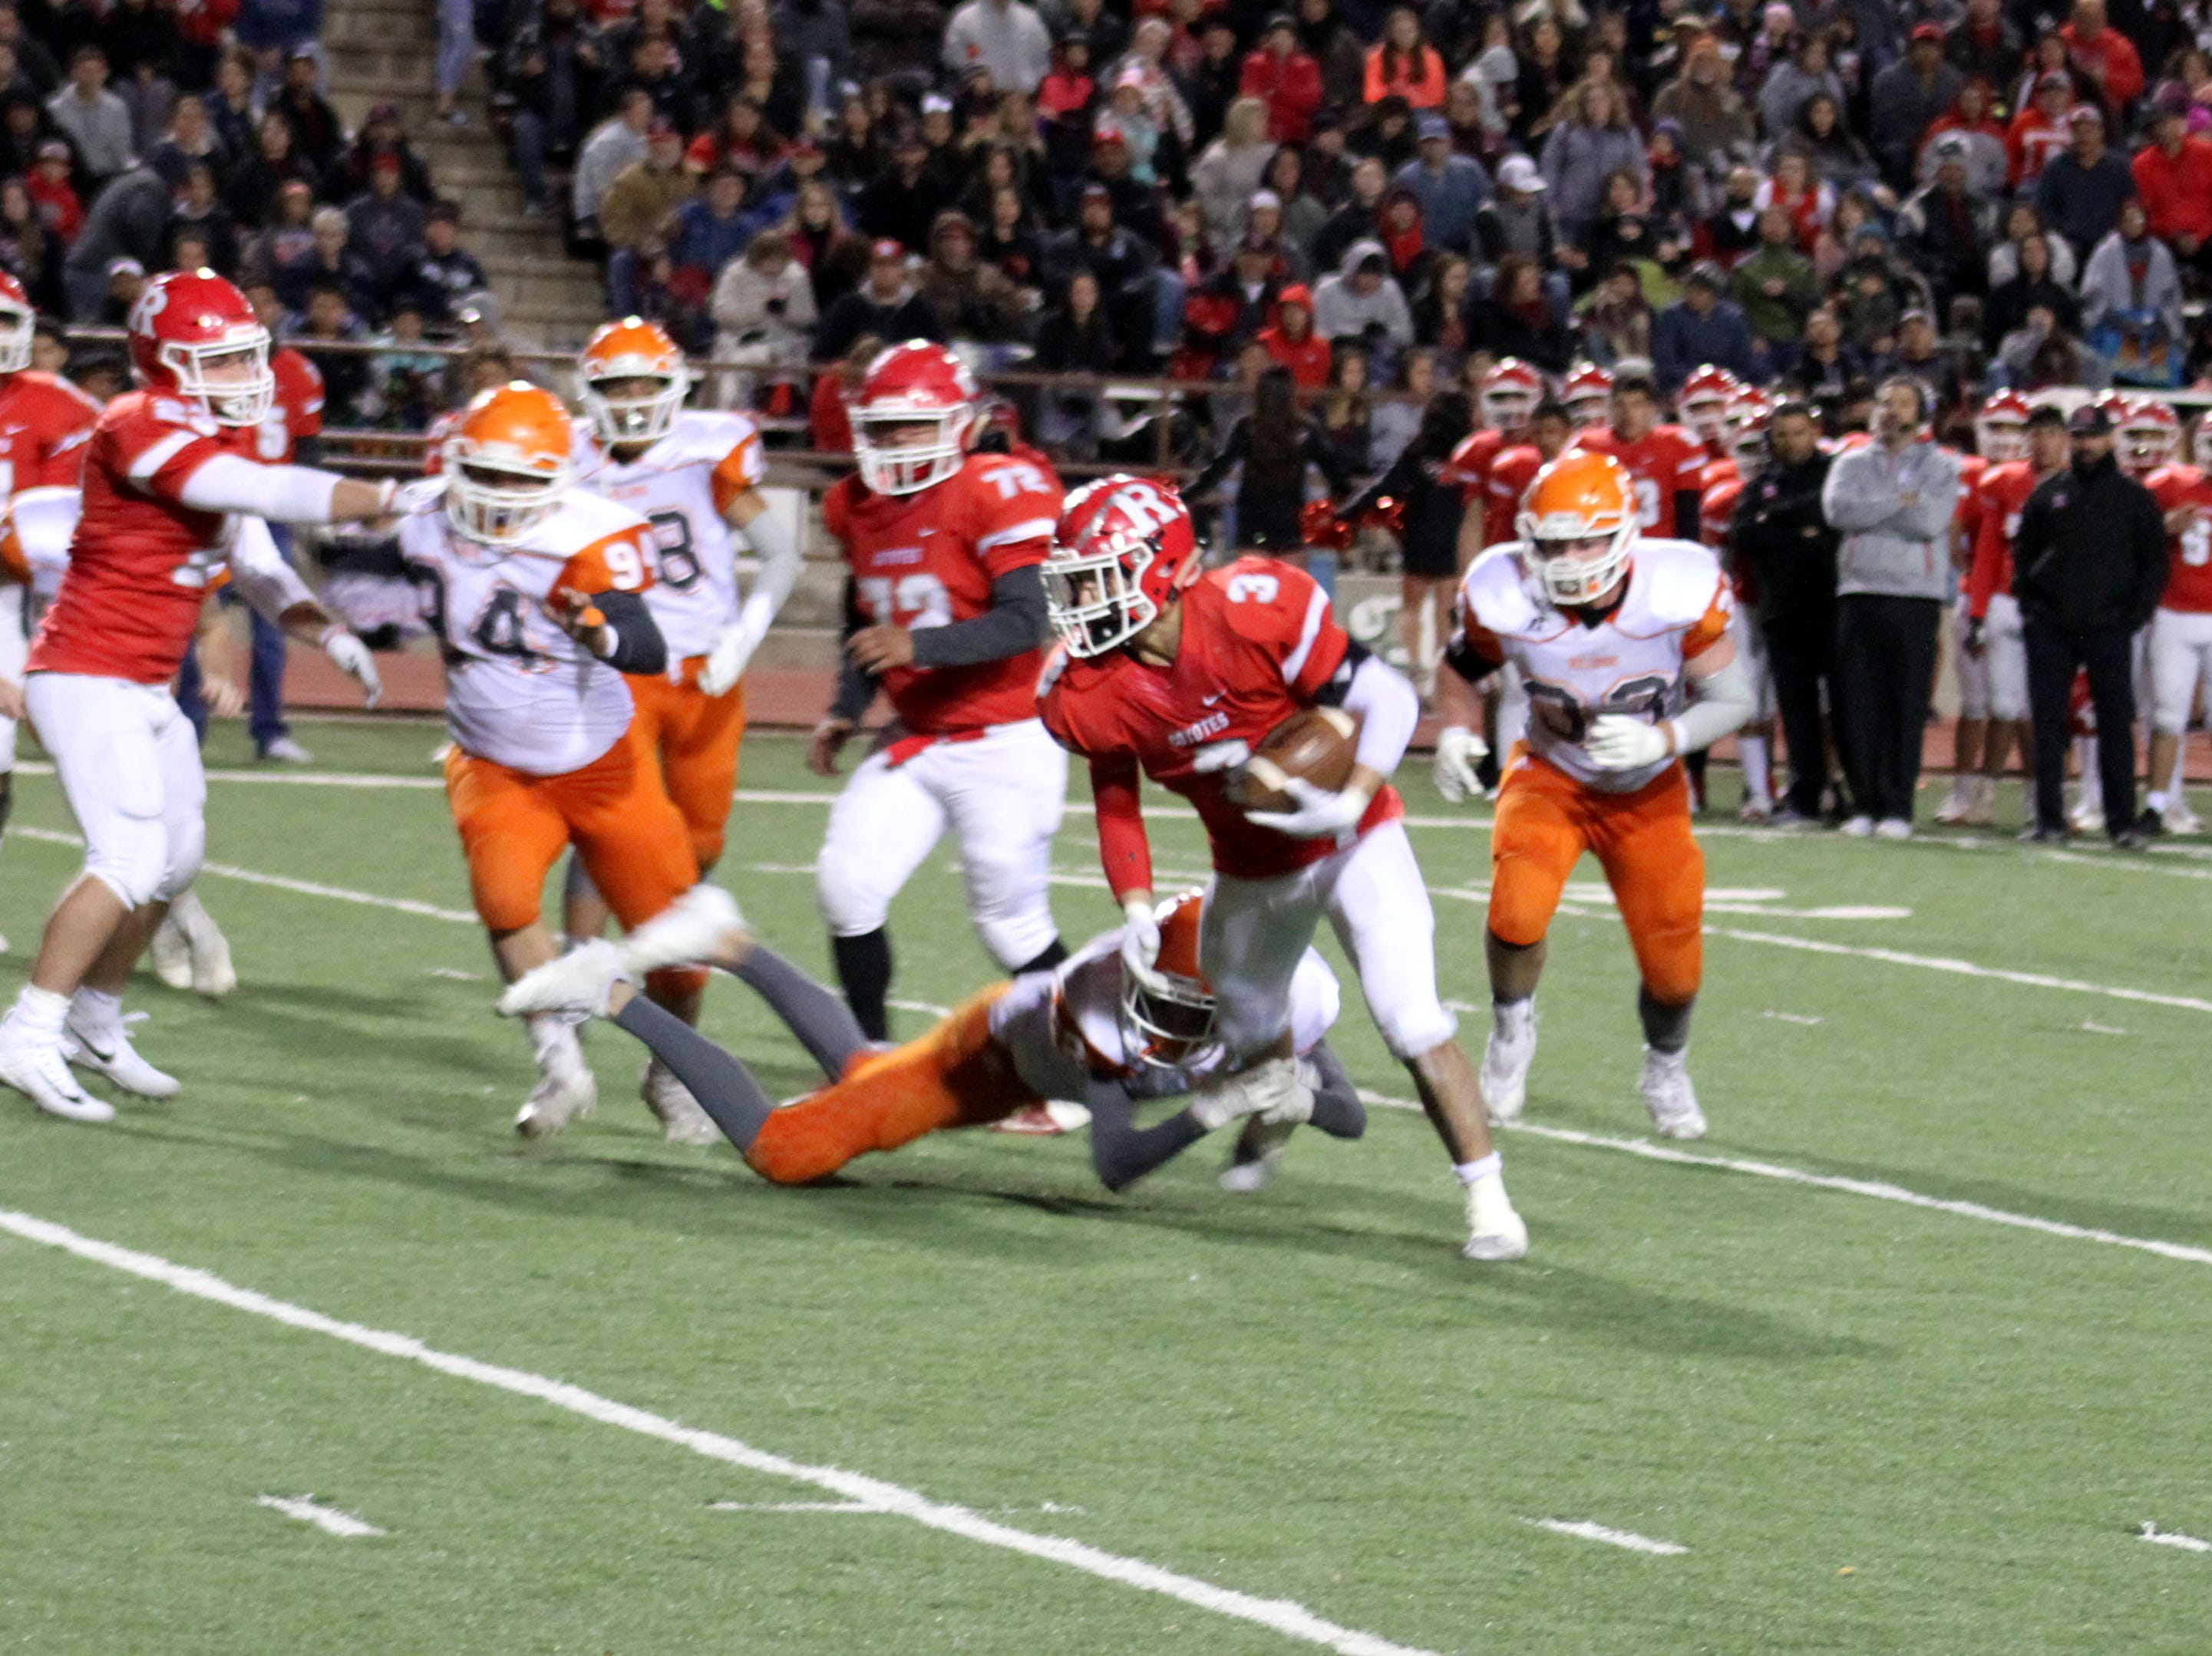 Roswell's Justin Carrasco escapes an Artesia defender during Friday's Class 5A semifinal game. Carrasco finished with one reception for 43 yards and 23 rushes for 140 yards and two touchdowns.